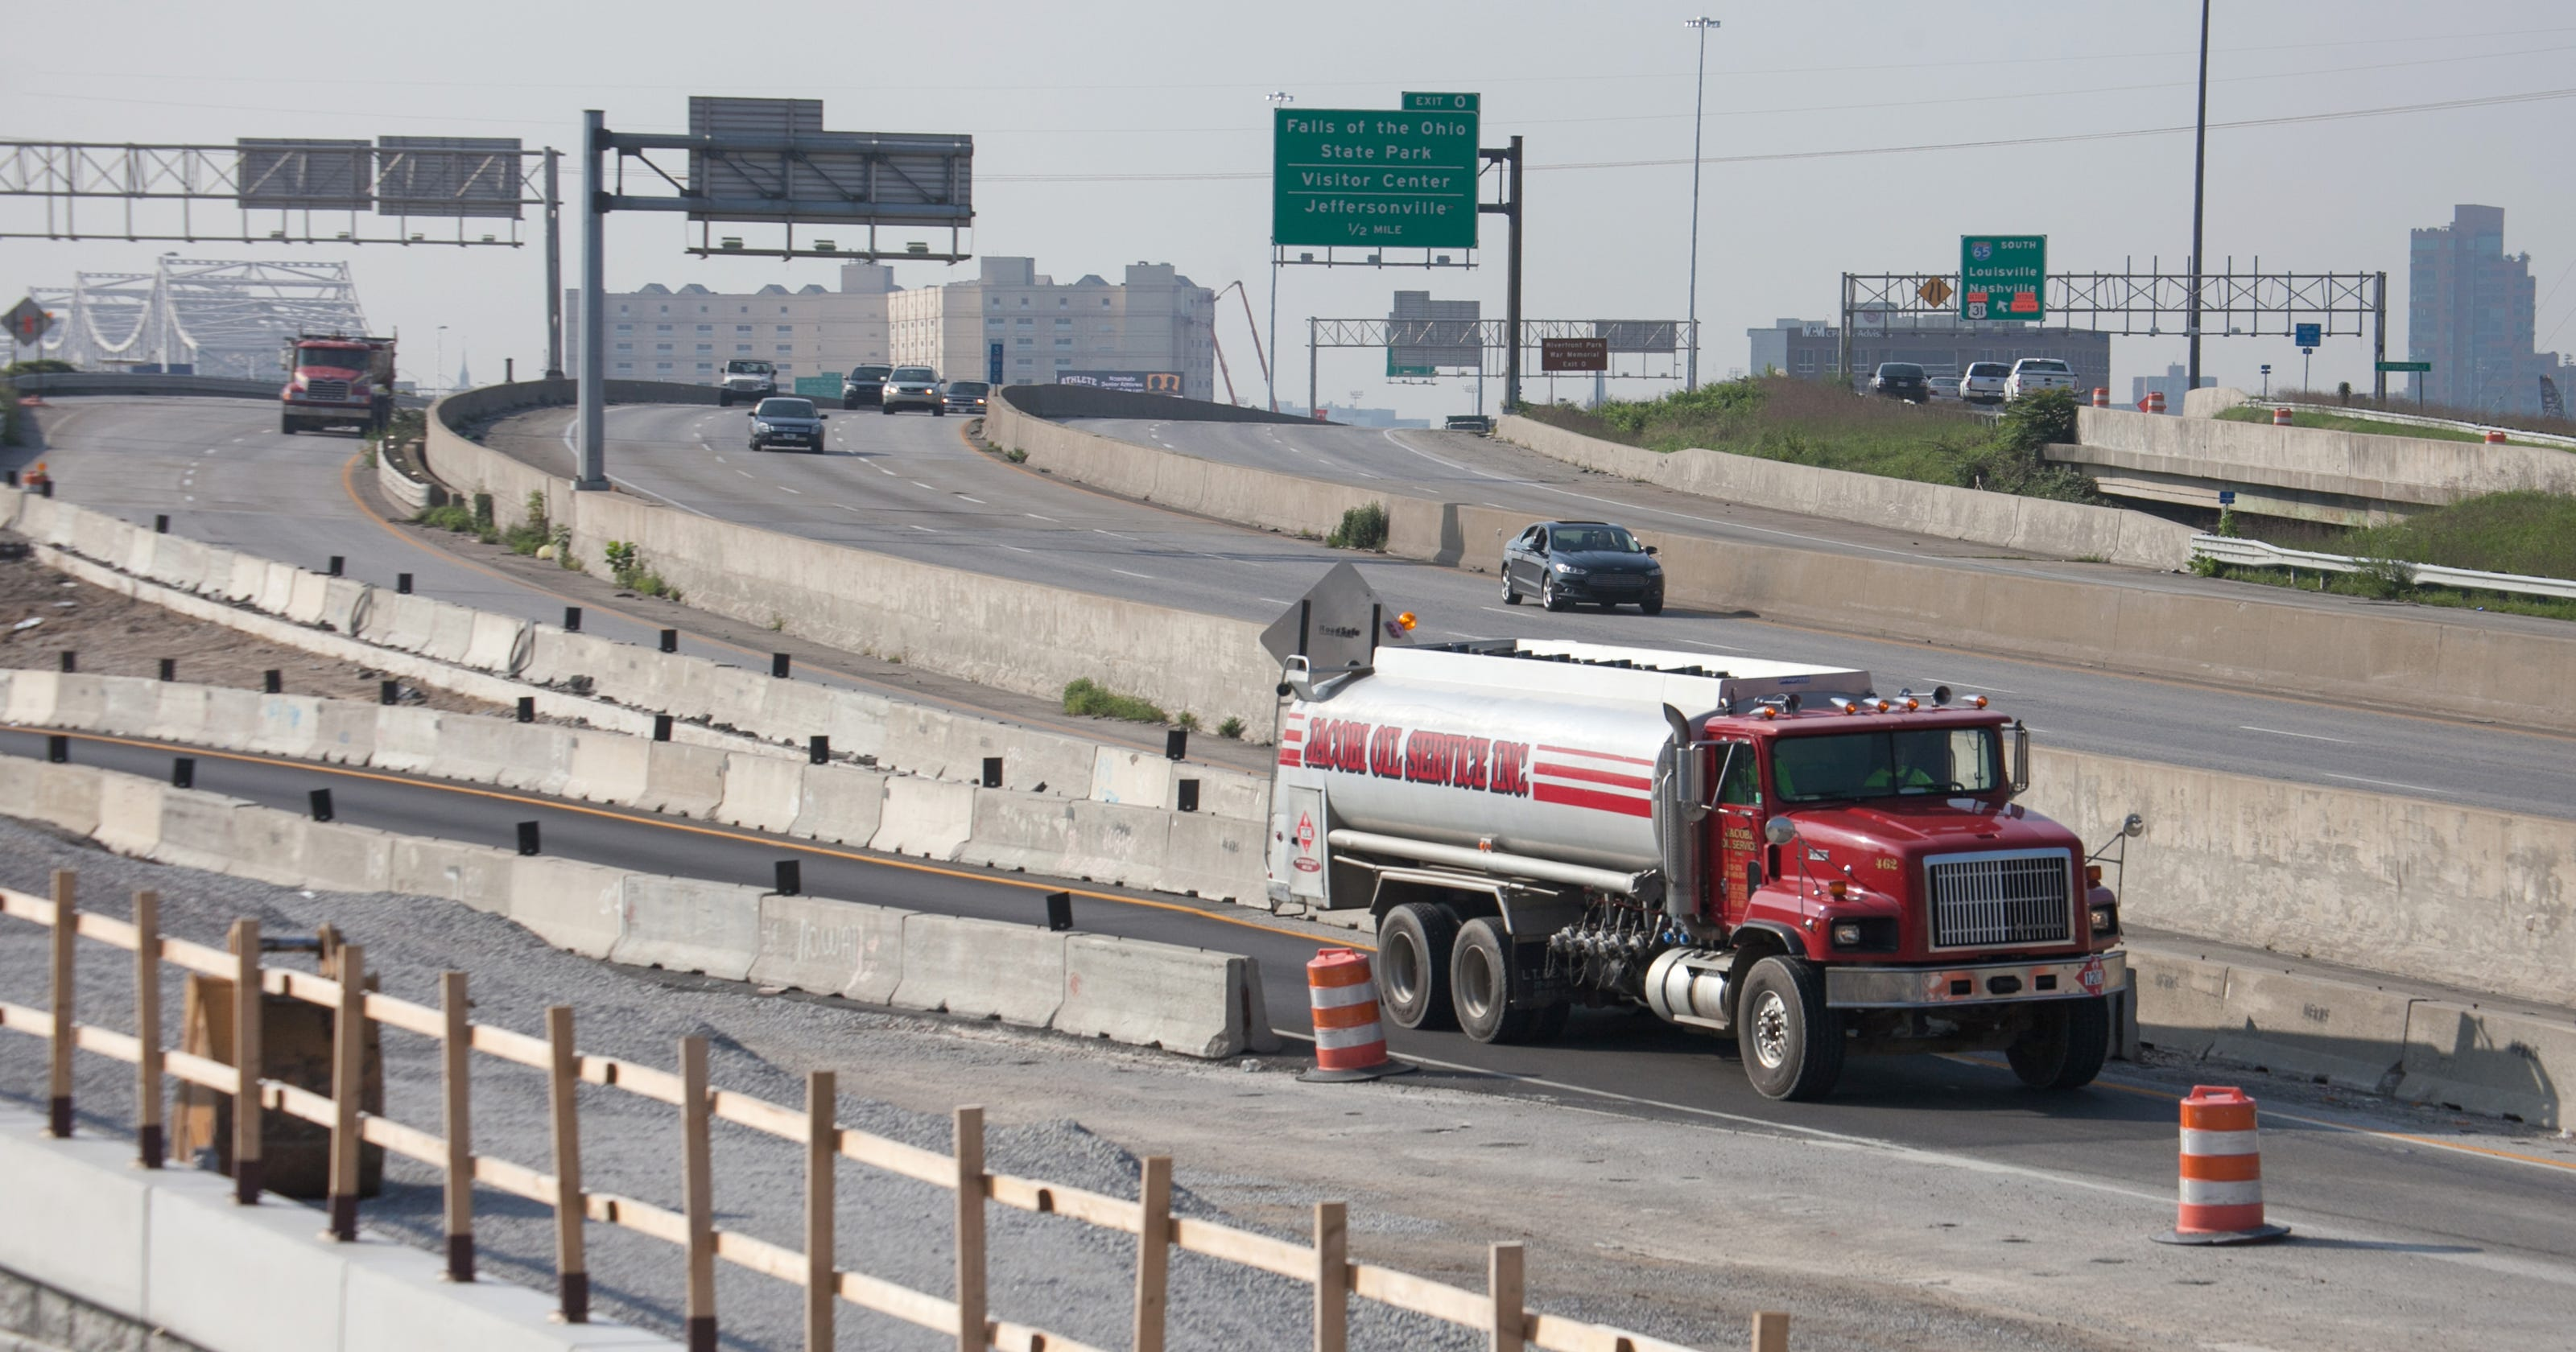 Bridges project to close I-65 lanes for 2 years